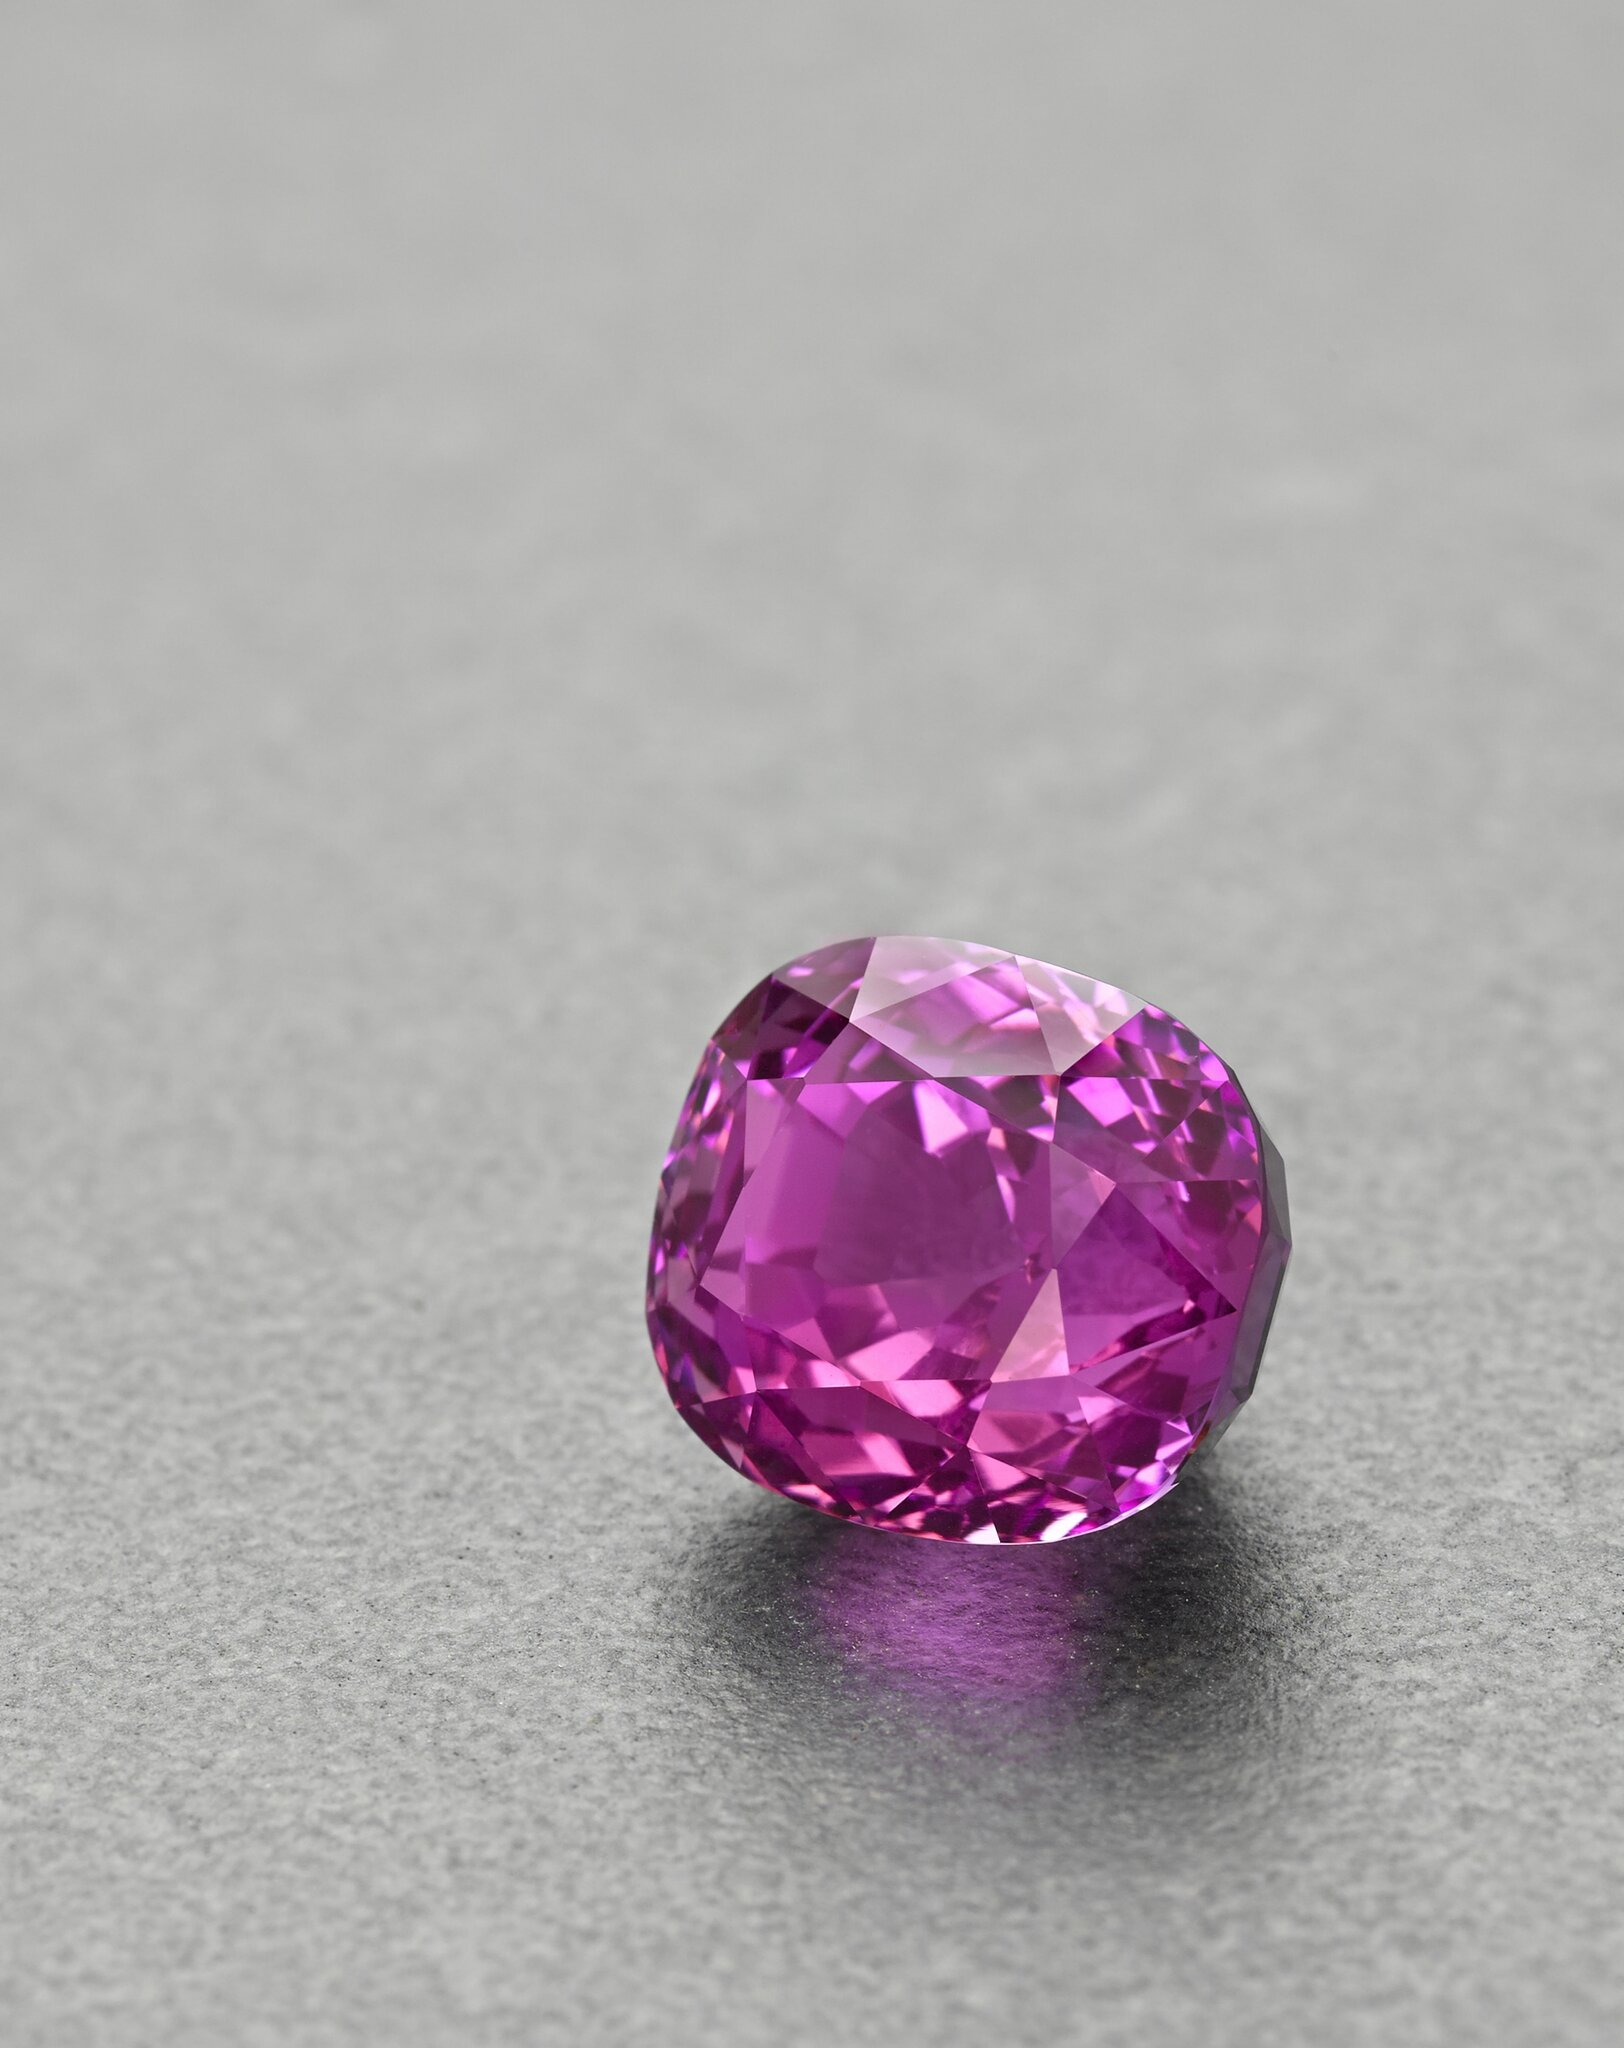 makes tanzania gemstone many spinel found is region color mahenge of small produced that only what places gem the rare a cecile designs in gems while again raley town this